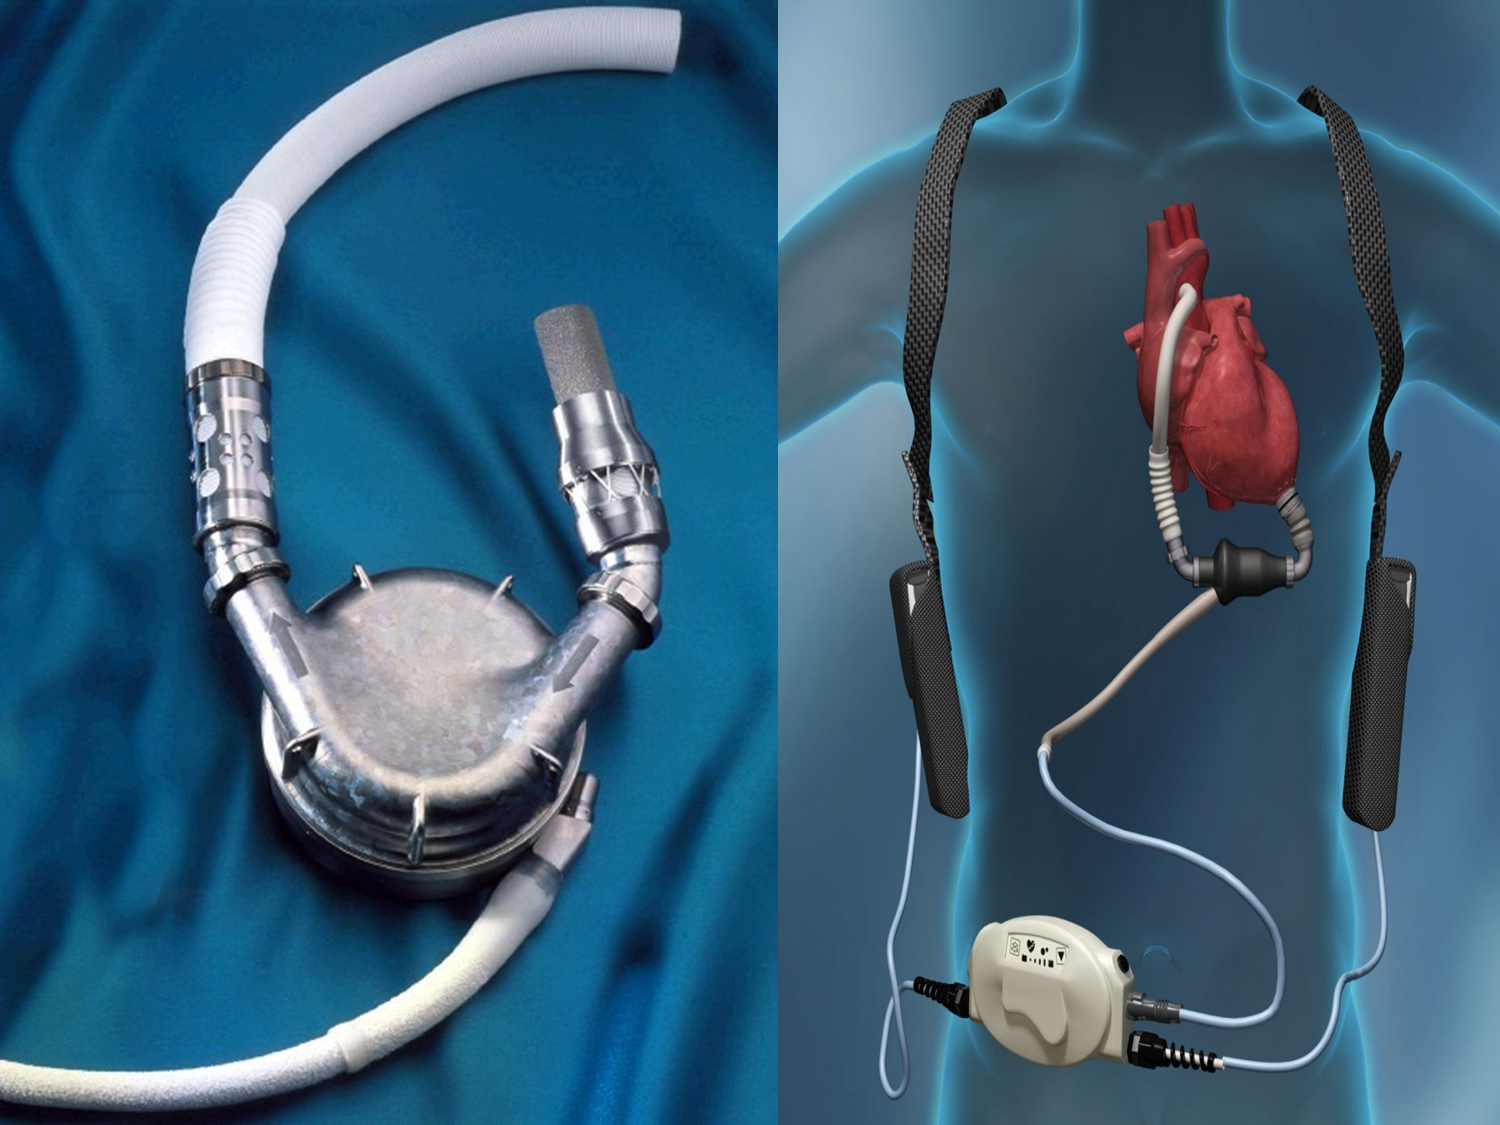 Latest Trends In Ventricular Assist Device Market 2019 | Top Key Players: AbioMed, Abbott (Thoratec), Medtronic (HeartWare), Berlin Heart